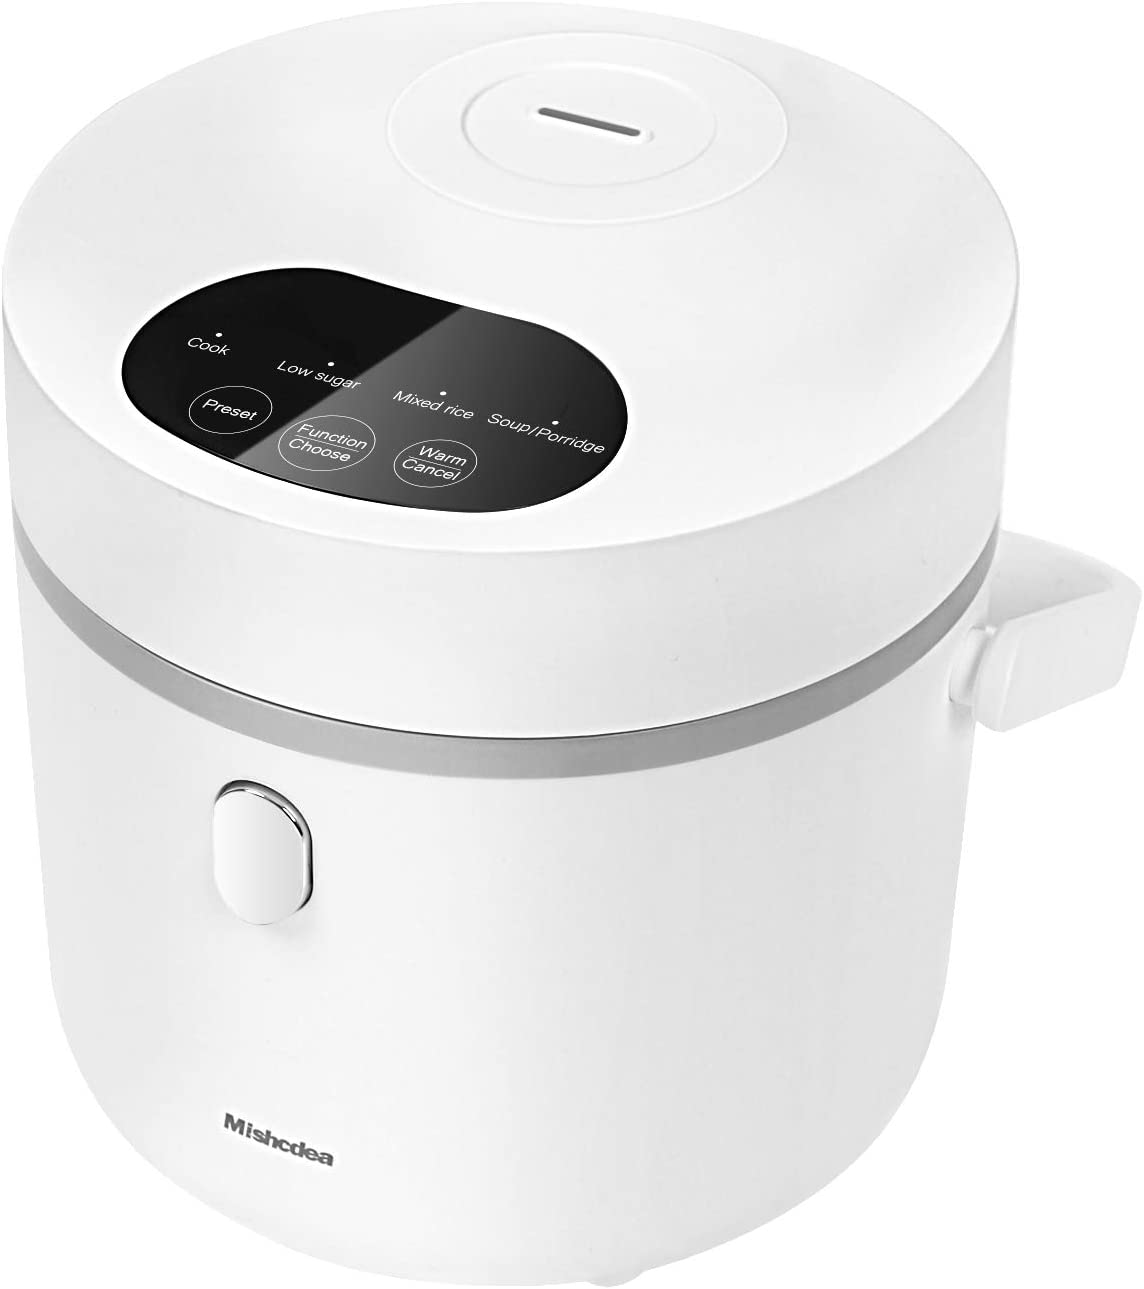 Mishcdea Small Rice Cooker, Low Sugar Rice Cooker, Personal Size Cooker for 1-2 People, Multi Food Steamer, 24 Hours Preset, Portable Rice Cooker 3 Cups (Uncooked), White